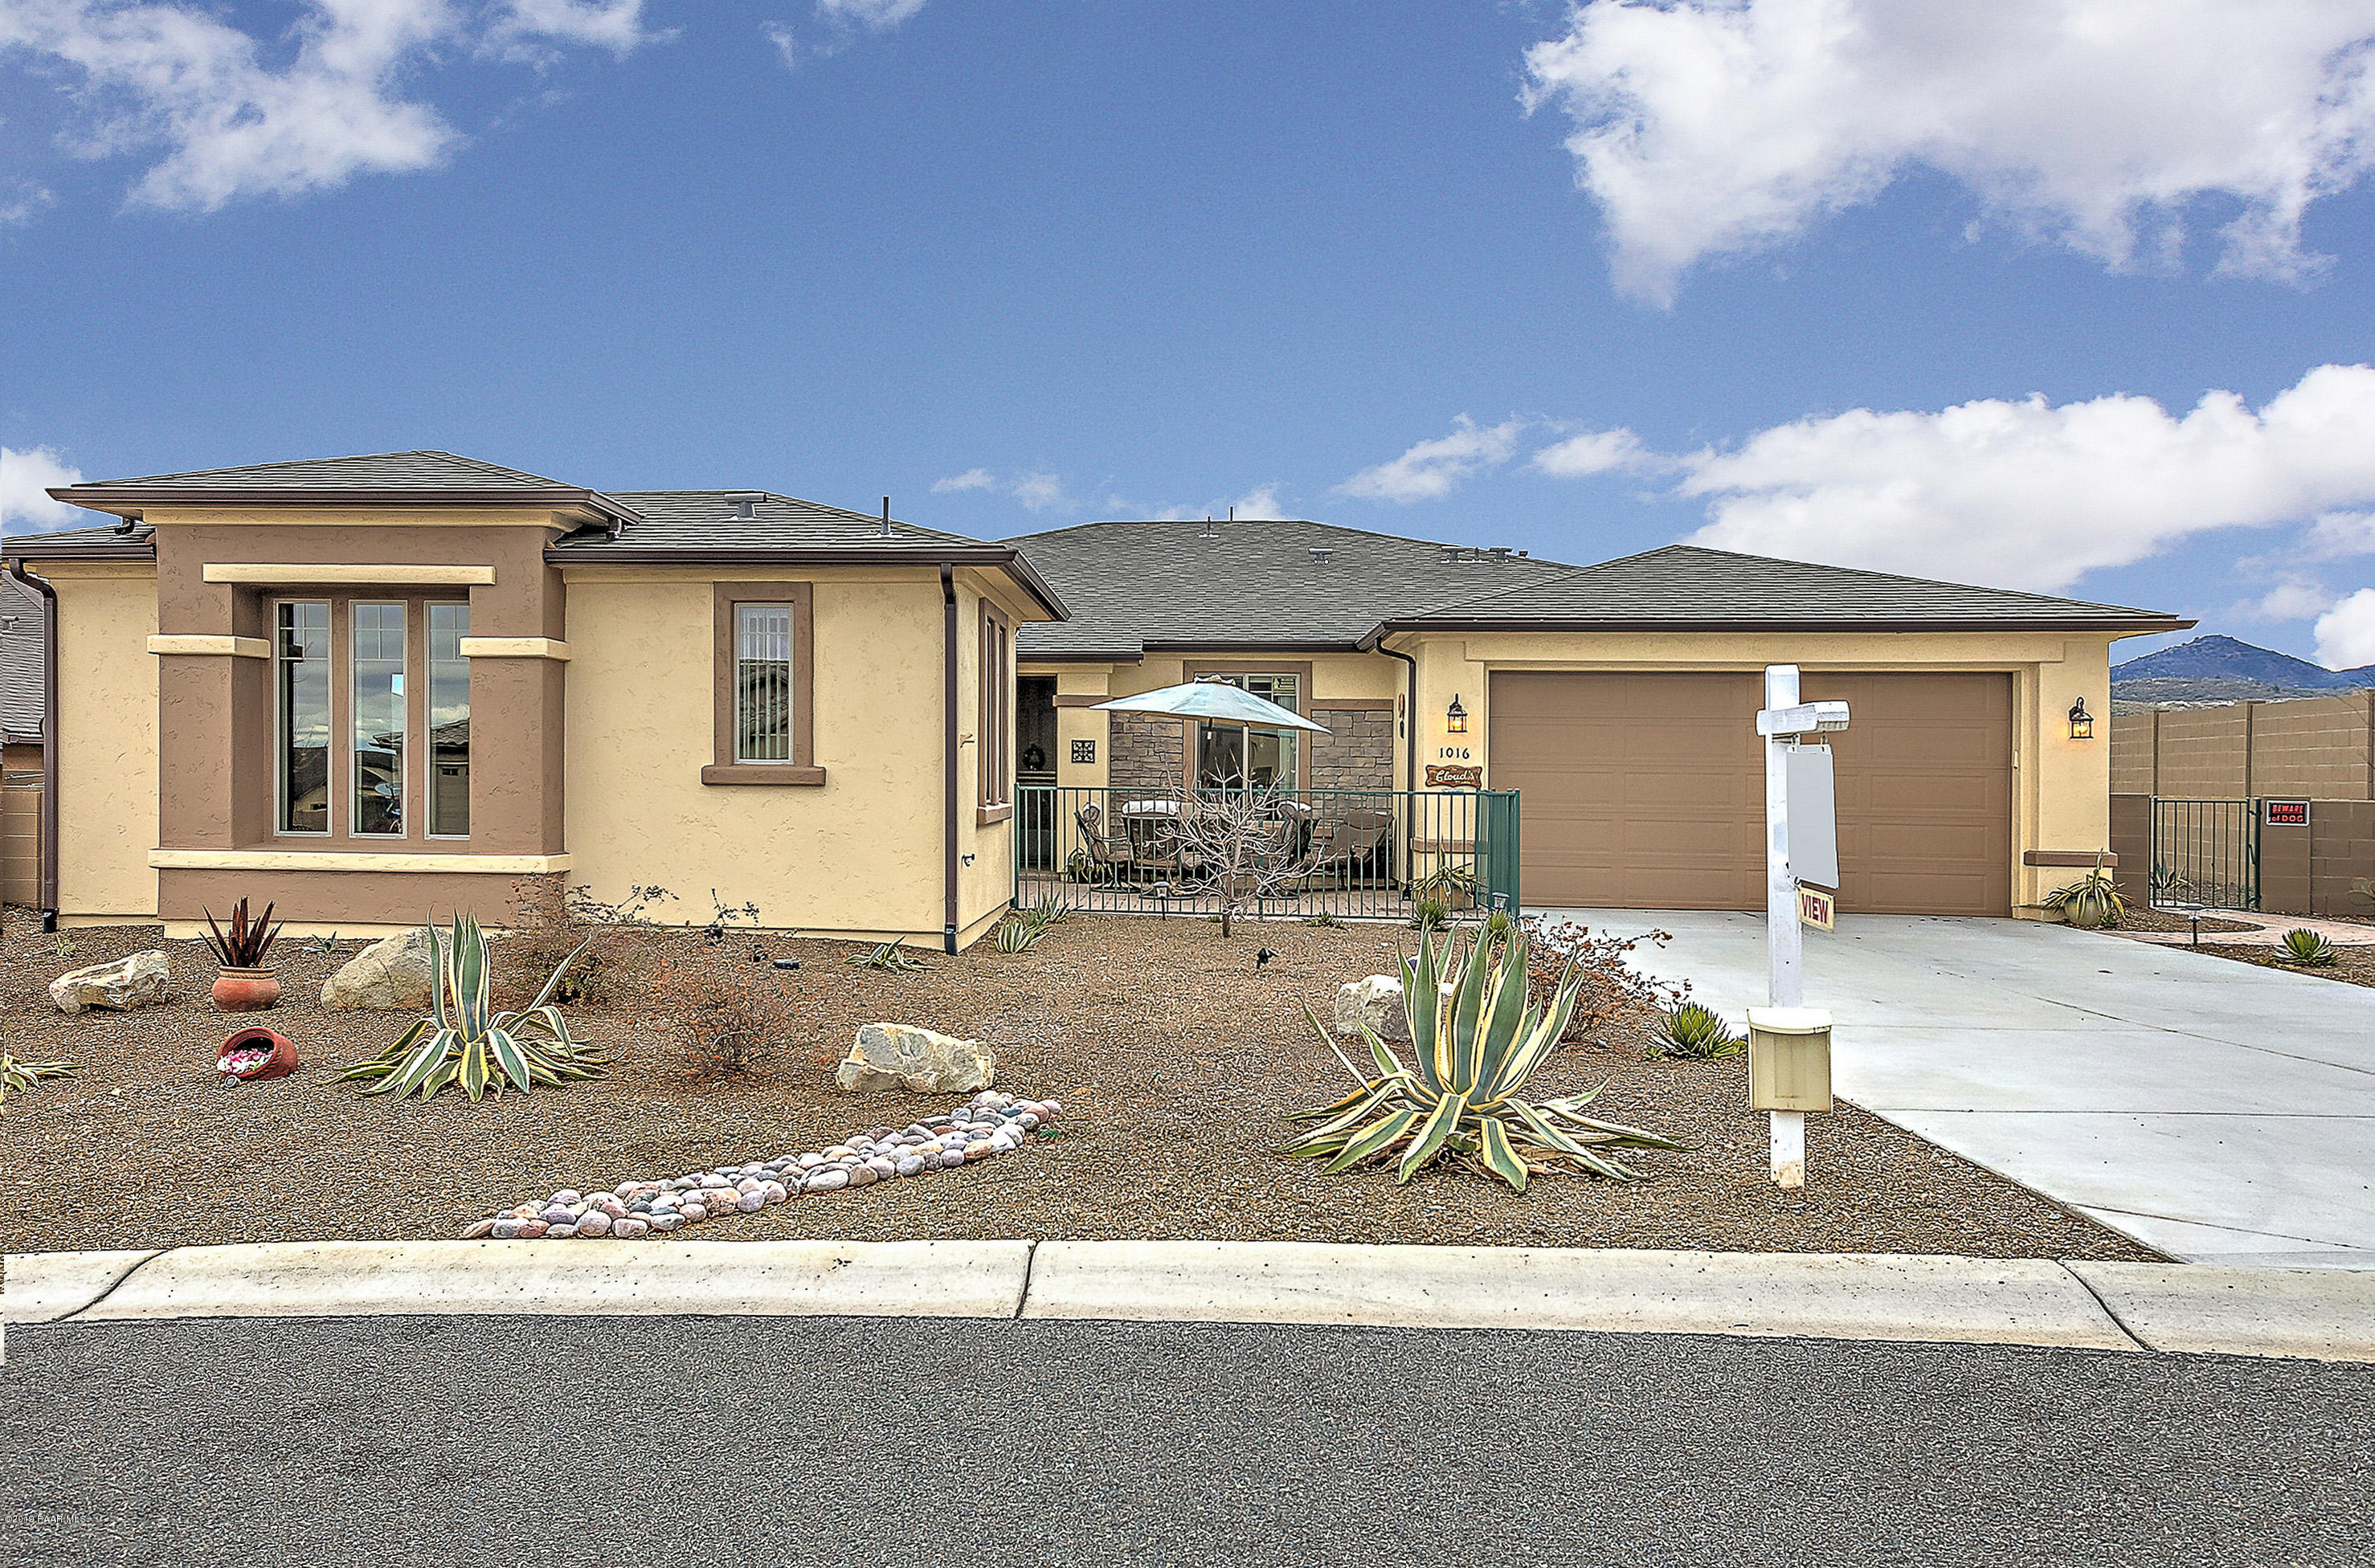 Photo of 1016 Wide Open, Prescott Valley, AZ 86314